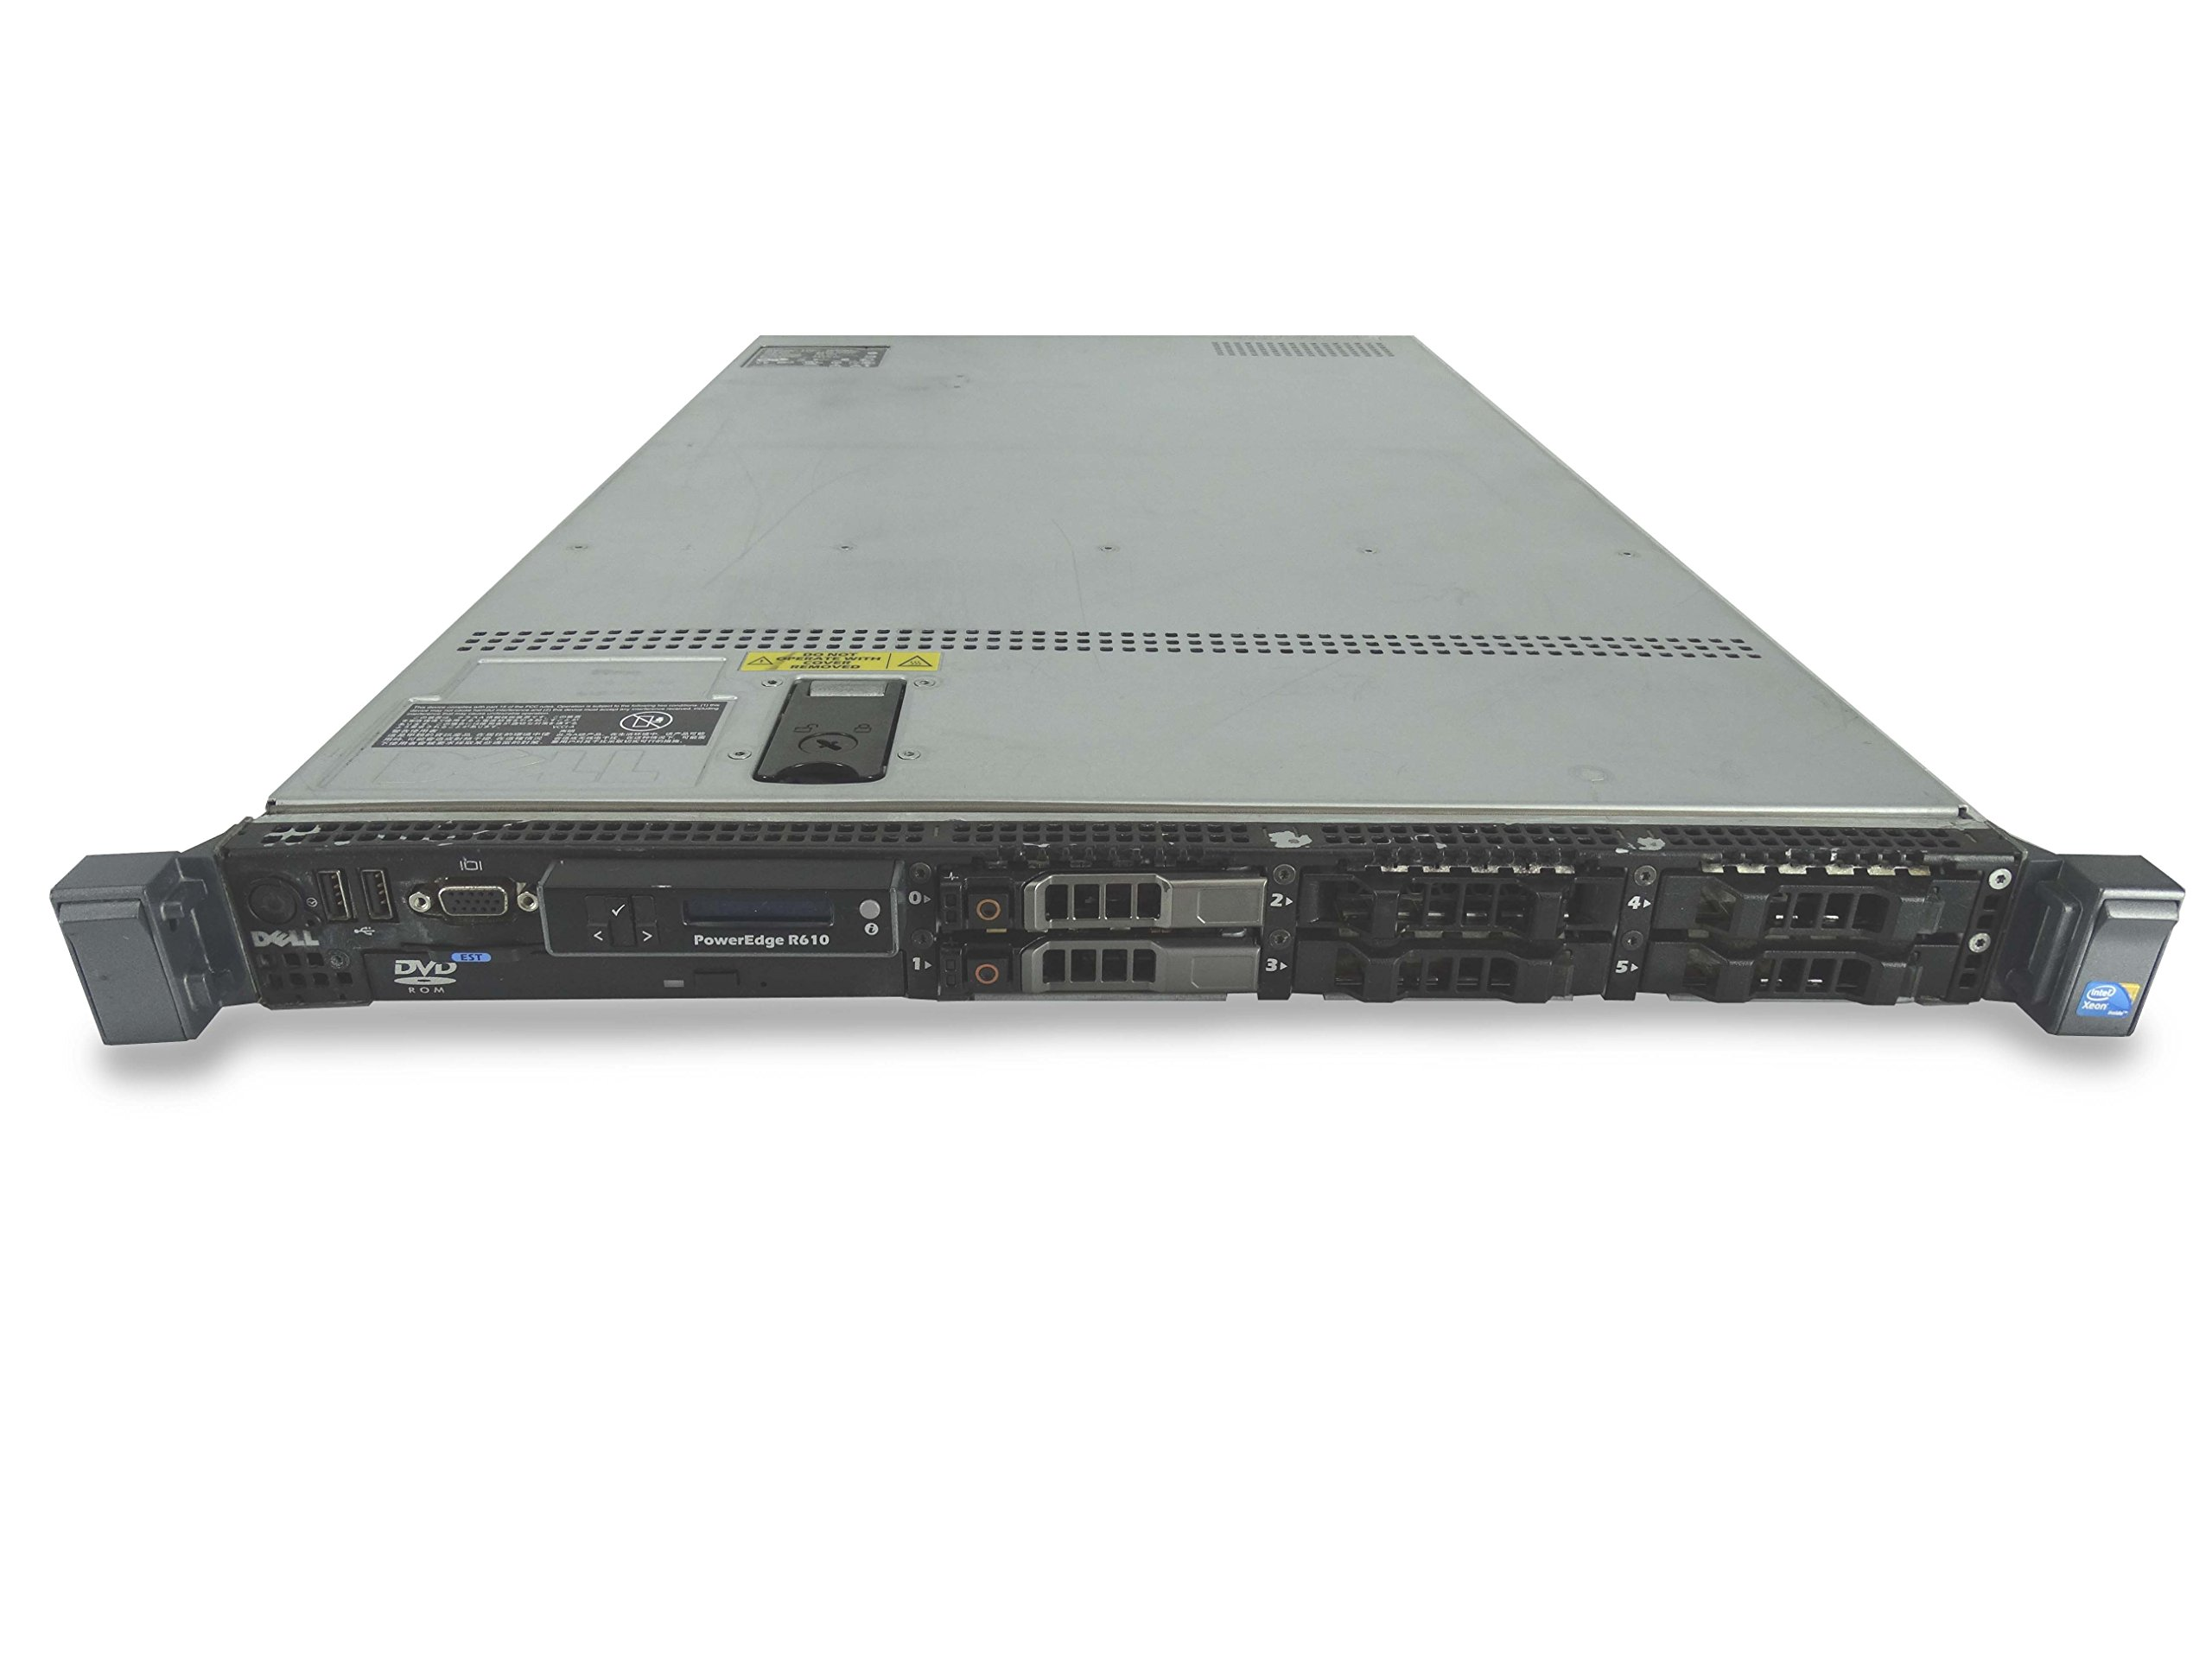 Dell PowerEdge R610 6-Bay SFF 1U Server, 2X X5650 2.66GHz 6C, 32GB DDR3, 2X 300GB 10K SAS 2.5, PERC 6/i, iDRAC 6 Express, 2X 711W PSUs, Rails (Certified Refurbished)